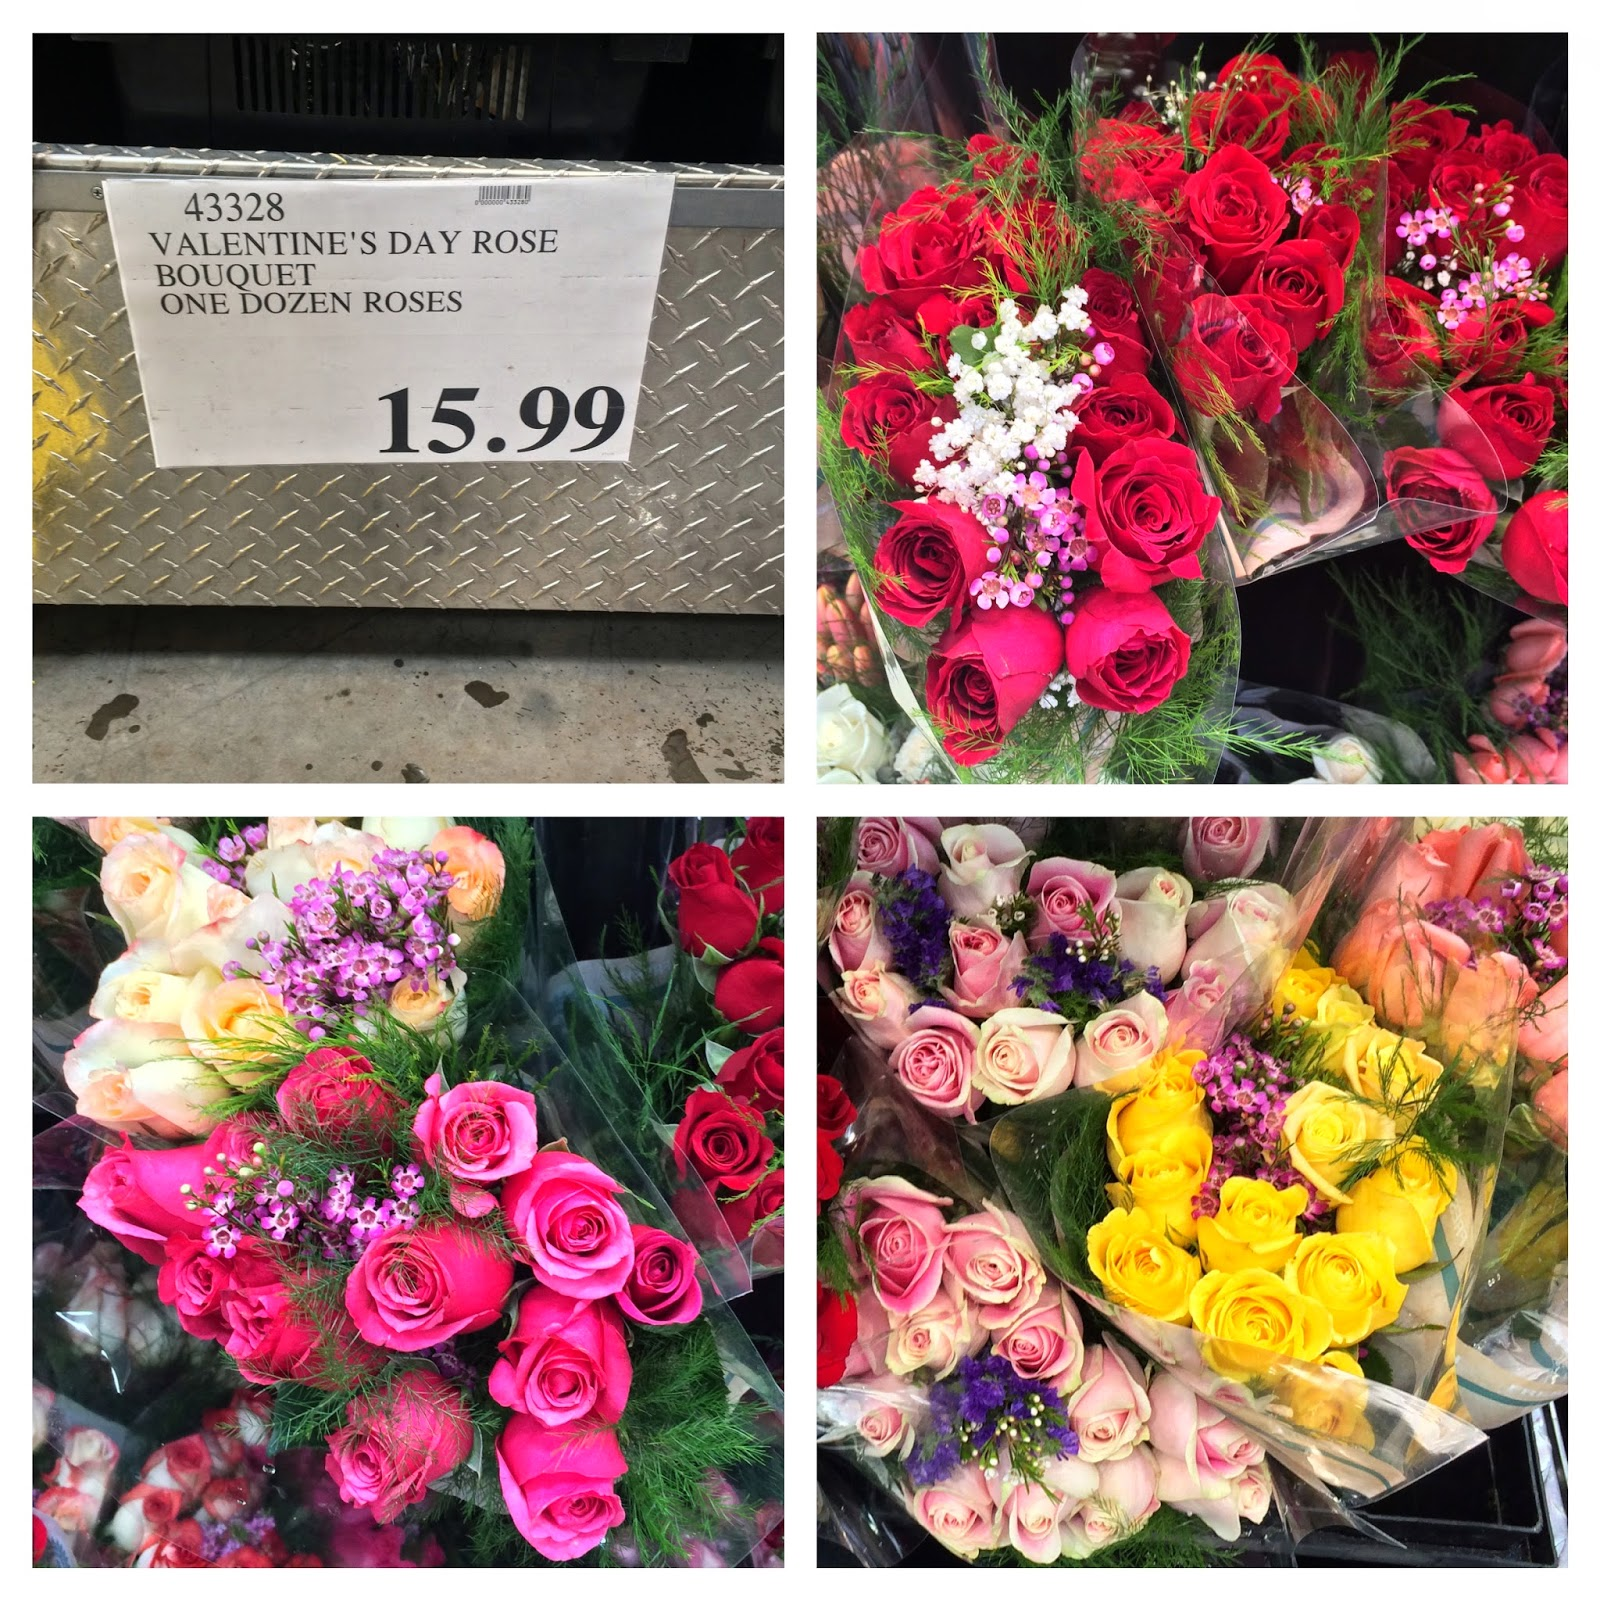 32f090155e Costco has you covered when it comes to the classic Valentine s Day combo of  flowers and chocolates. Choose from a variety of floral bouquets and ...